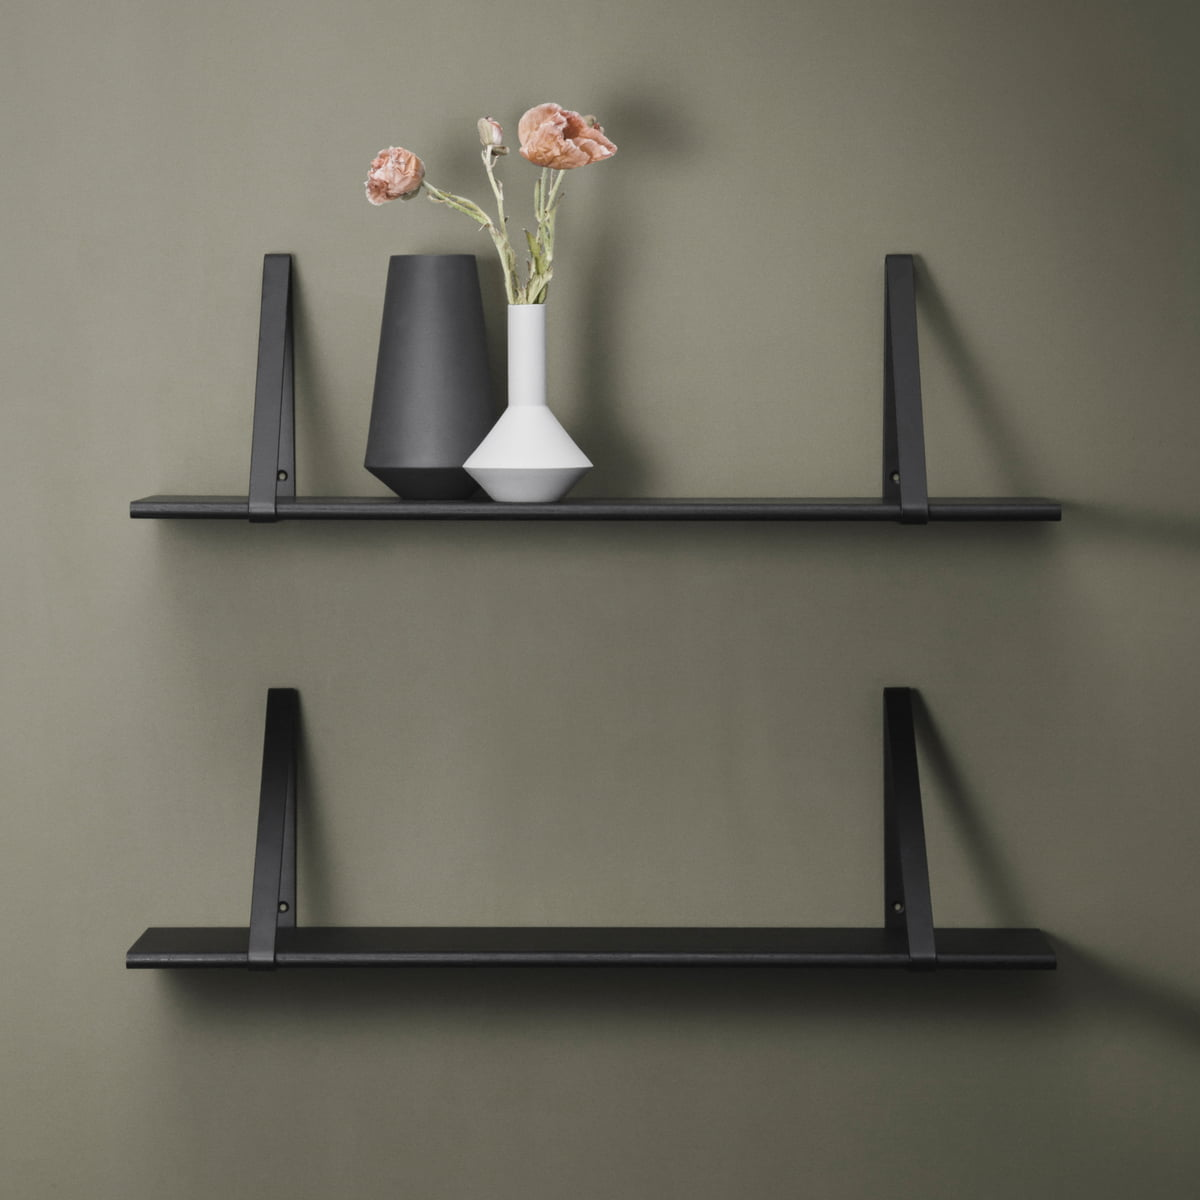 syst me d 39 tag res shelf hangers ferm living. Black Bedroom Furniture Sets. Home Design Ideas